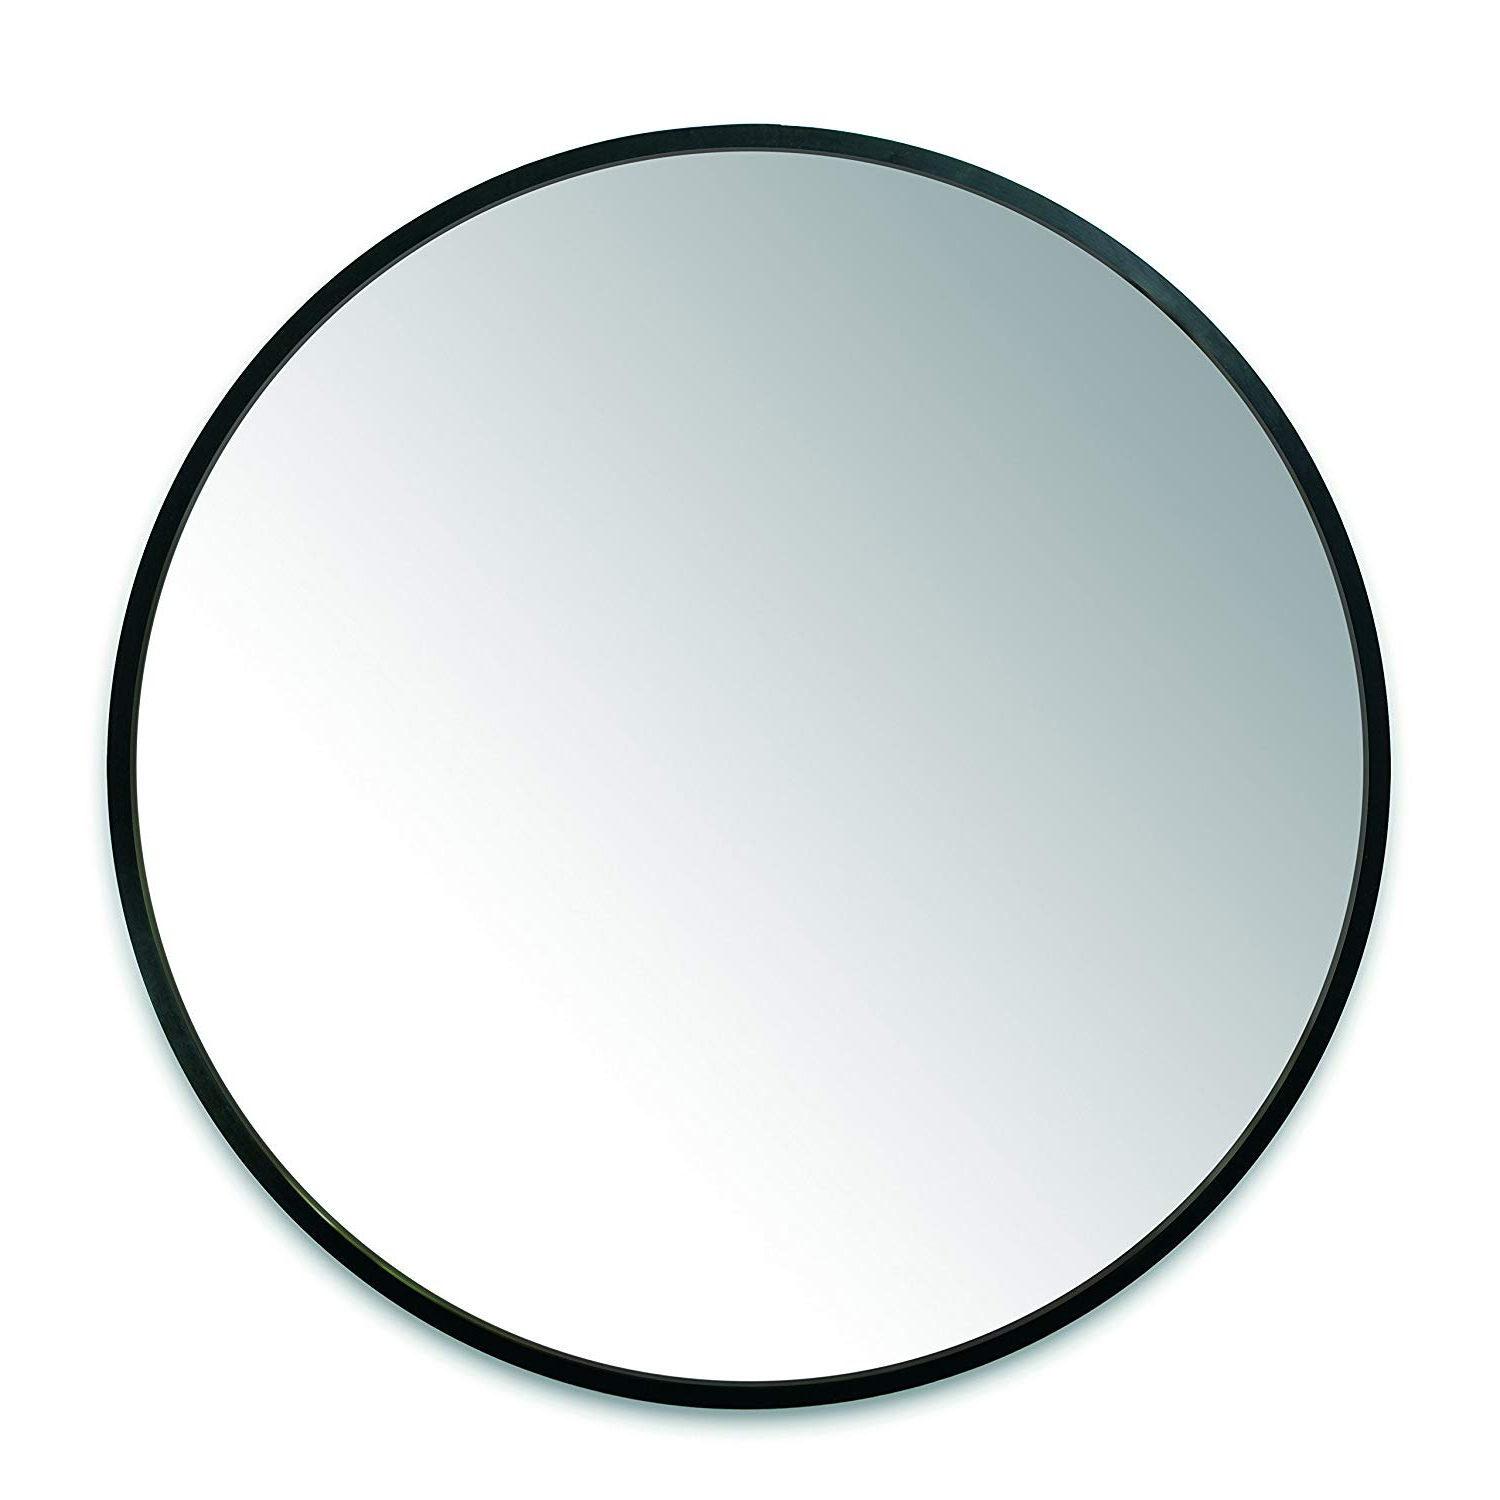 Favorite Needville Modern & Contemporary Accent Mirrors Throughout Umbra Hub Wall Mirror With Rubber Frame – 37 Inch Round Wall Mirror For  Entryways, Washrooms, Living Rooms And More, Doubles As Modern Wall Art,  Black (View 7 of 20)